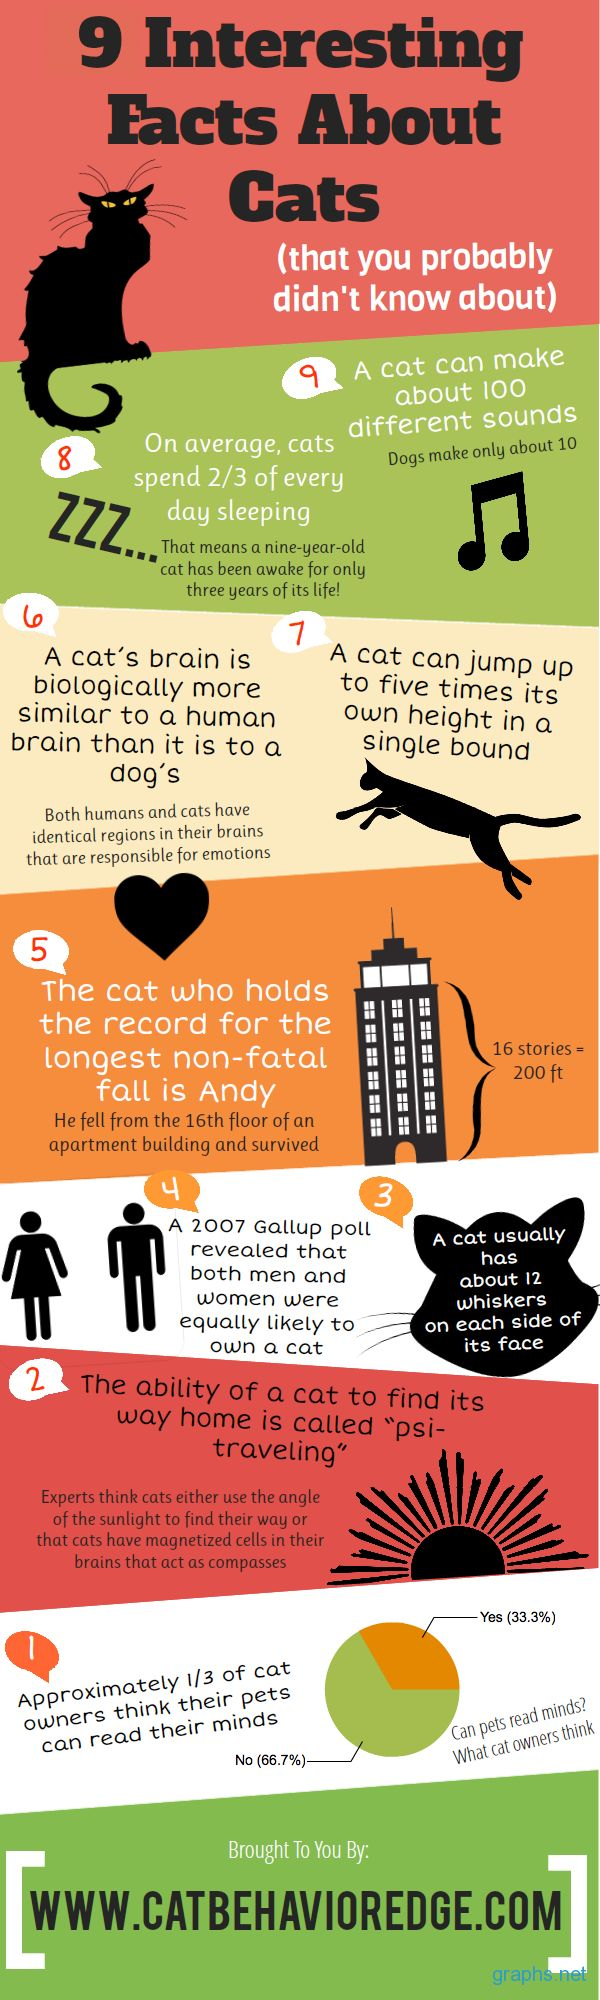 9 Amazing Facts About Cats